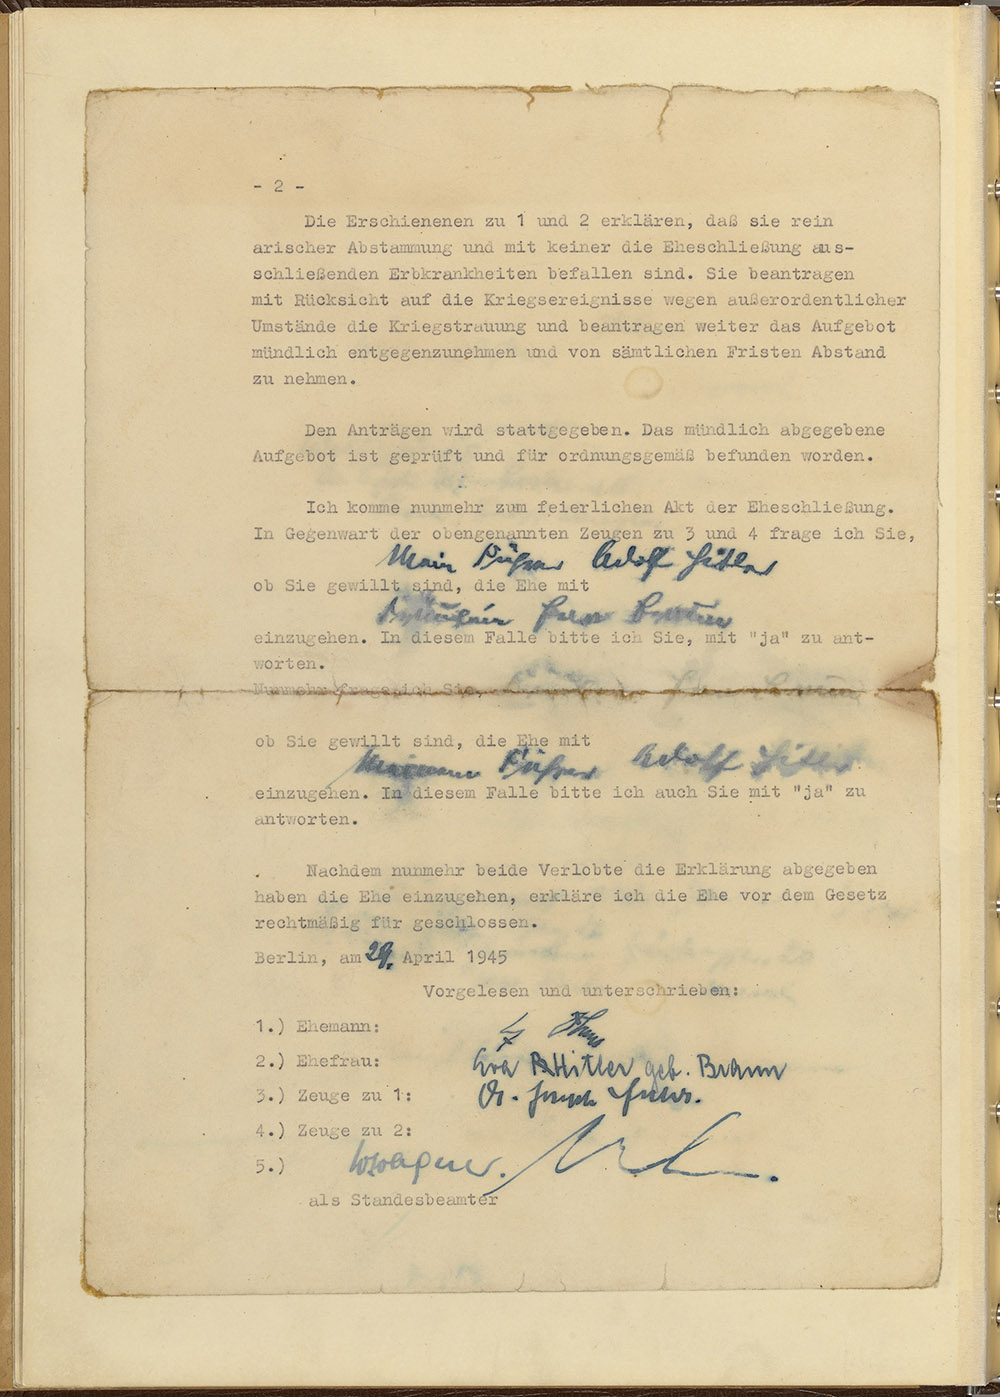 Back page of the marriage certificate signed by Adolf Hitler and Eva Hitler nee Braun on the morning of April 29, 1945.